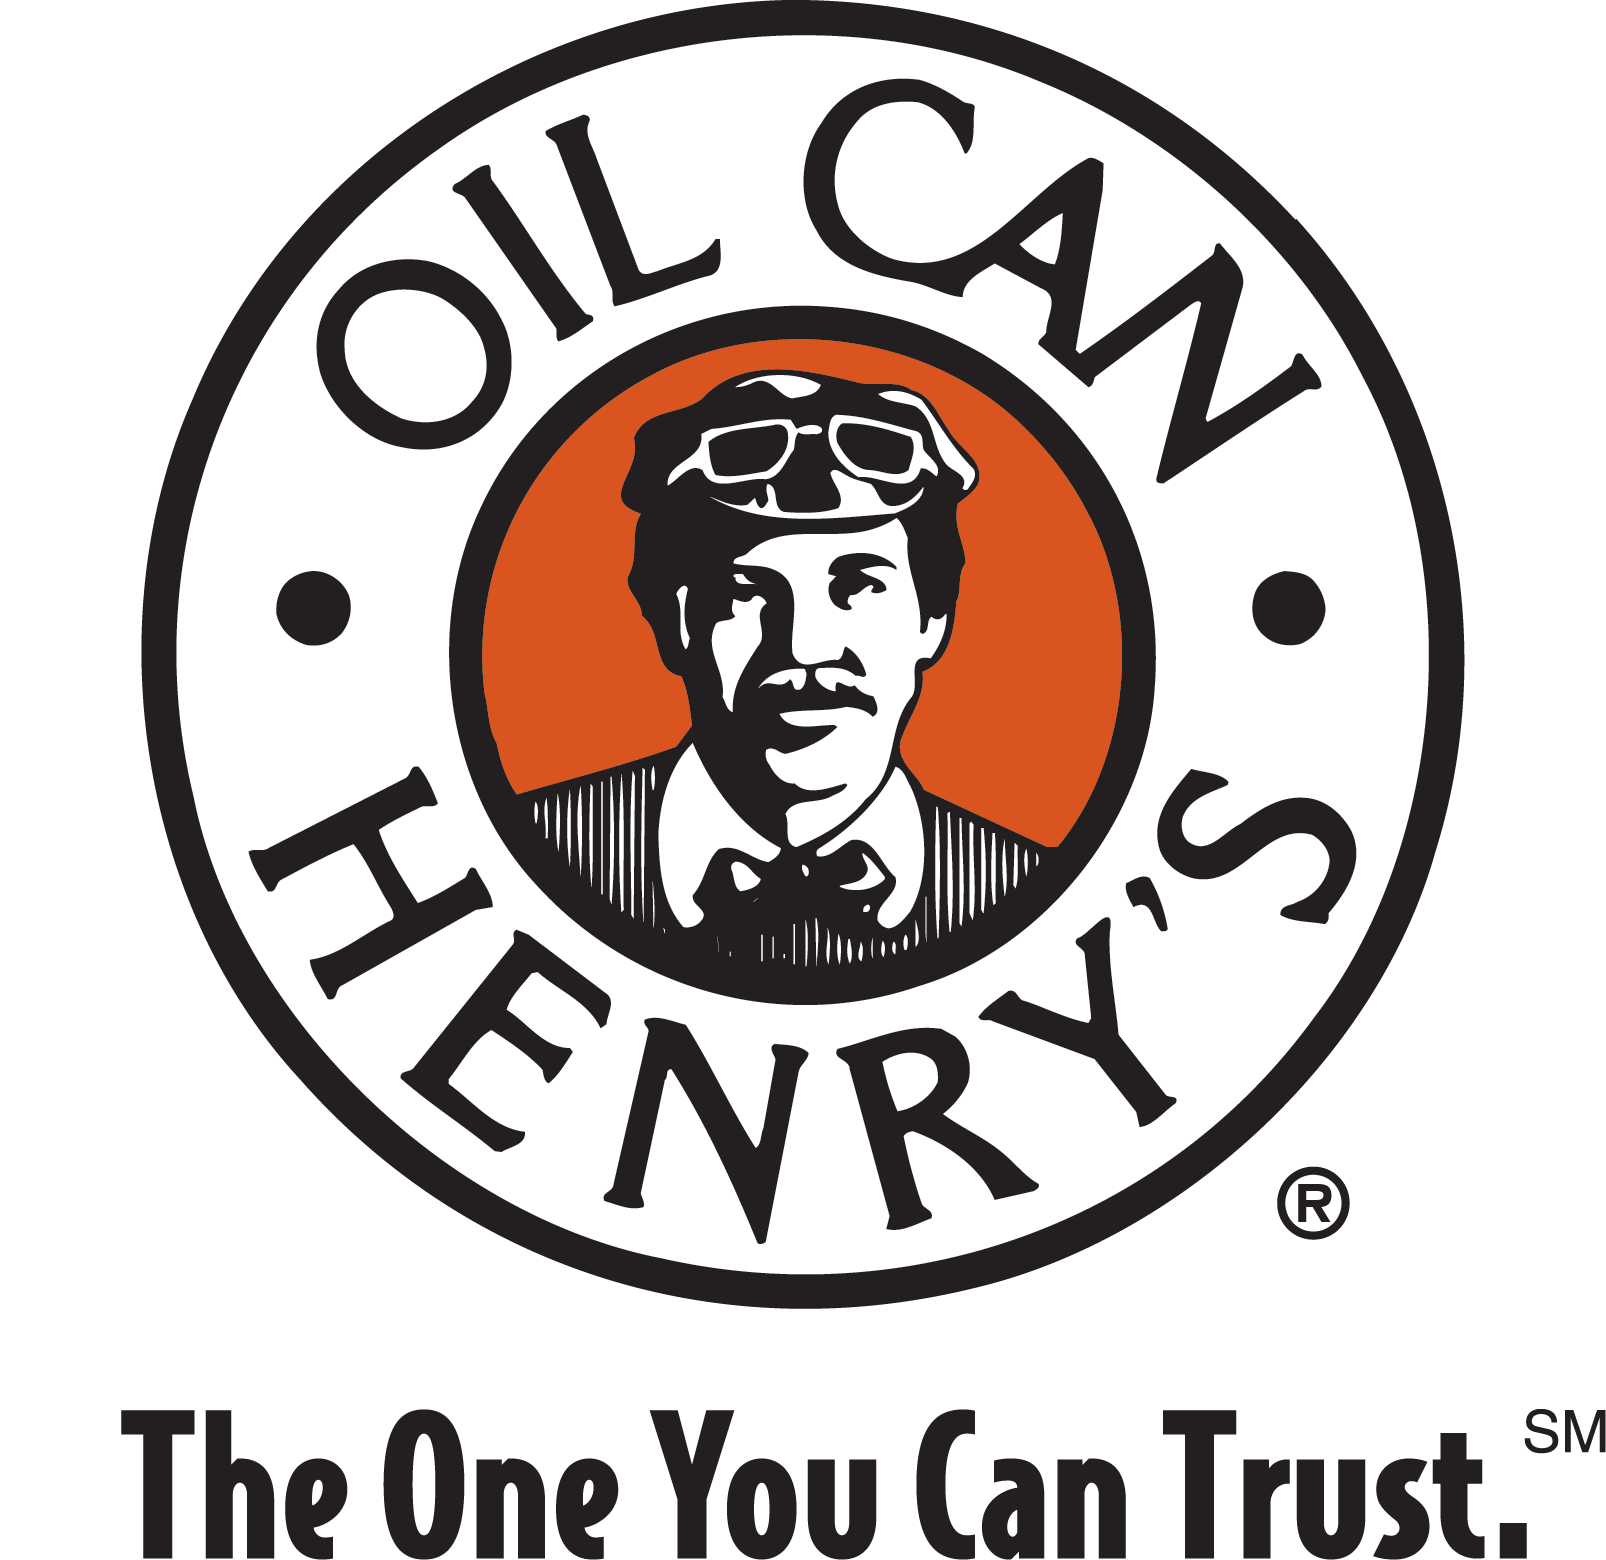 image about Oil Can Henry Coupons Printable called Thank Oneself for Finishing Our Study! - Oil Can Henrys